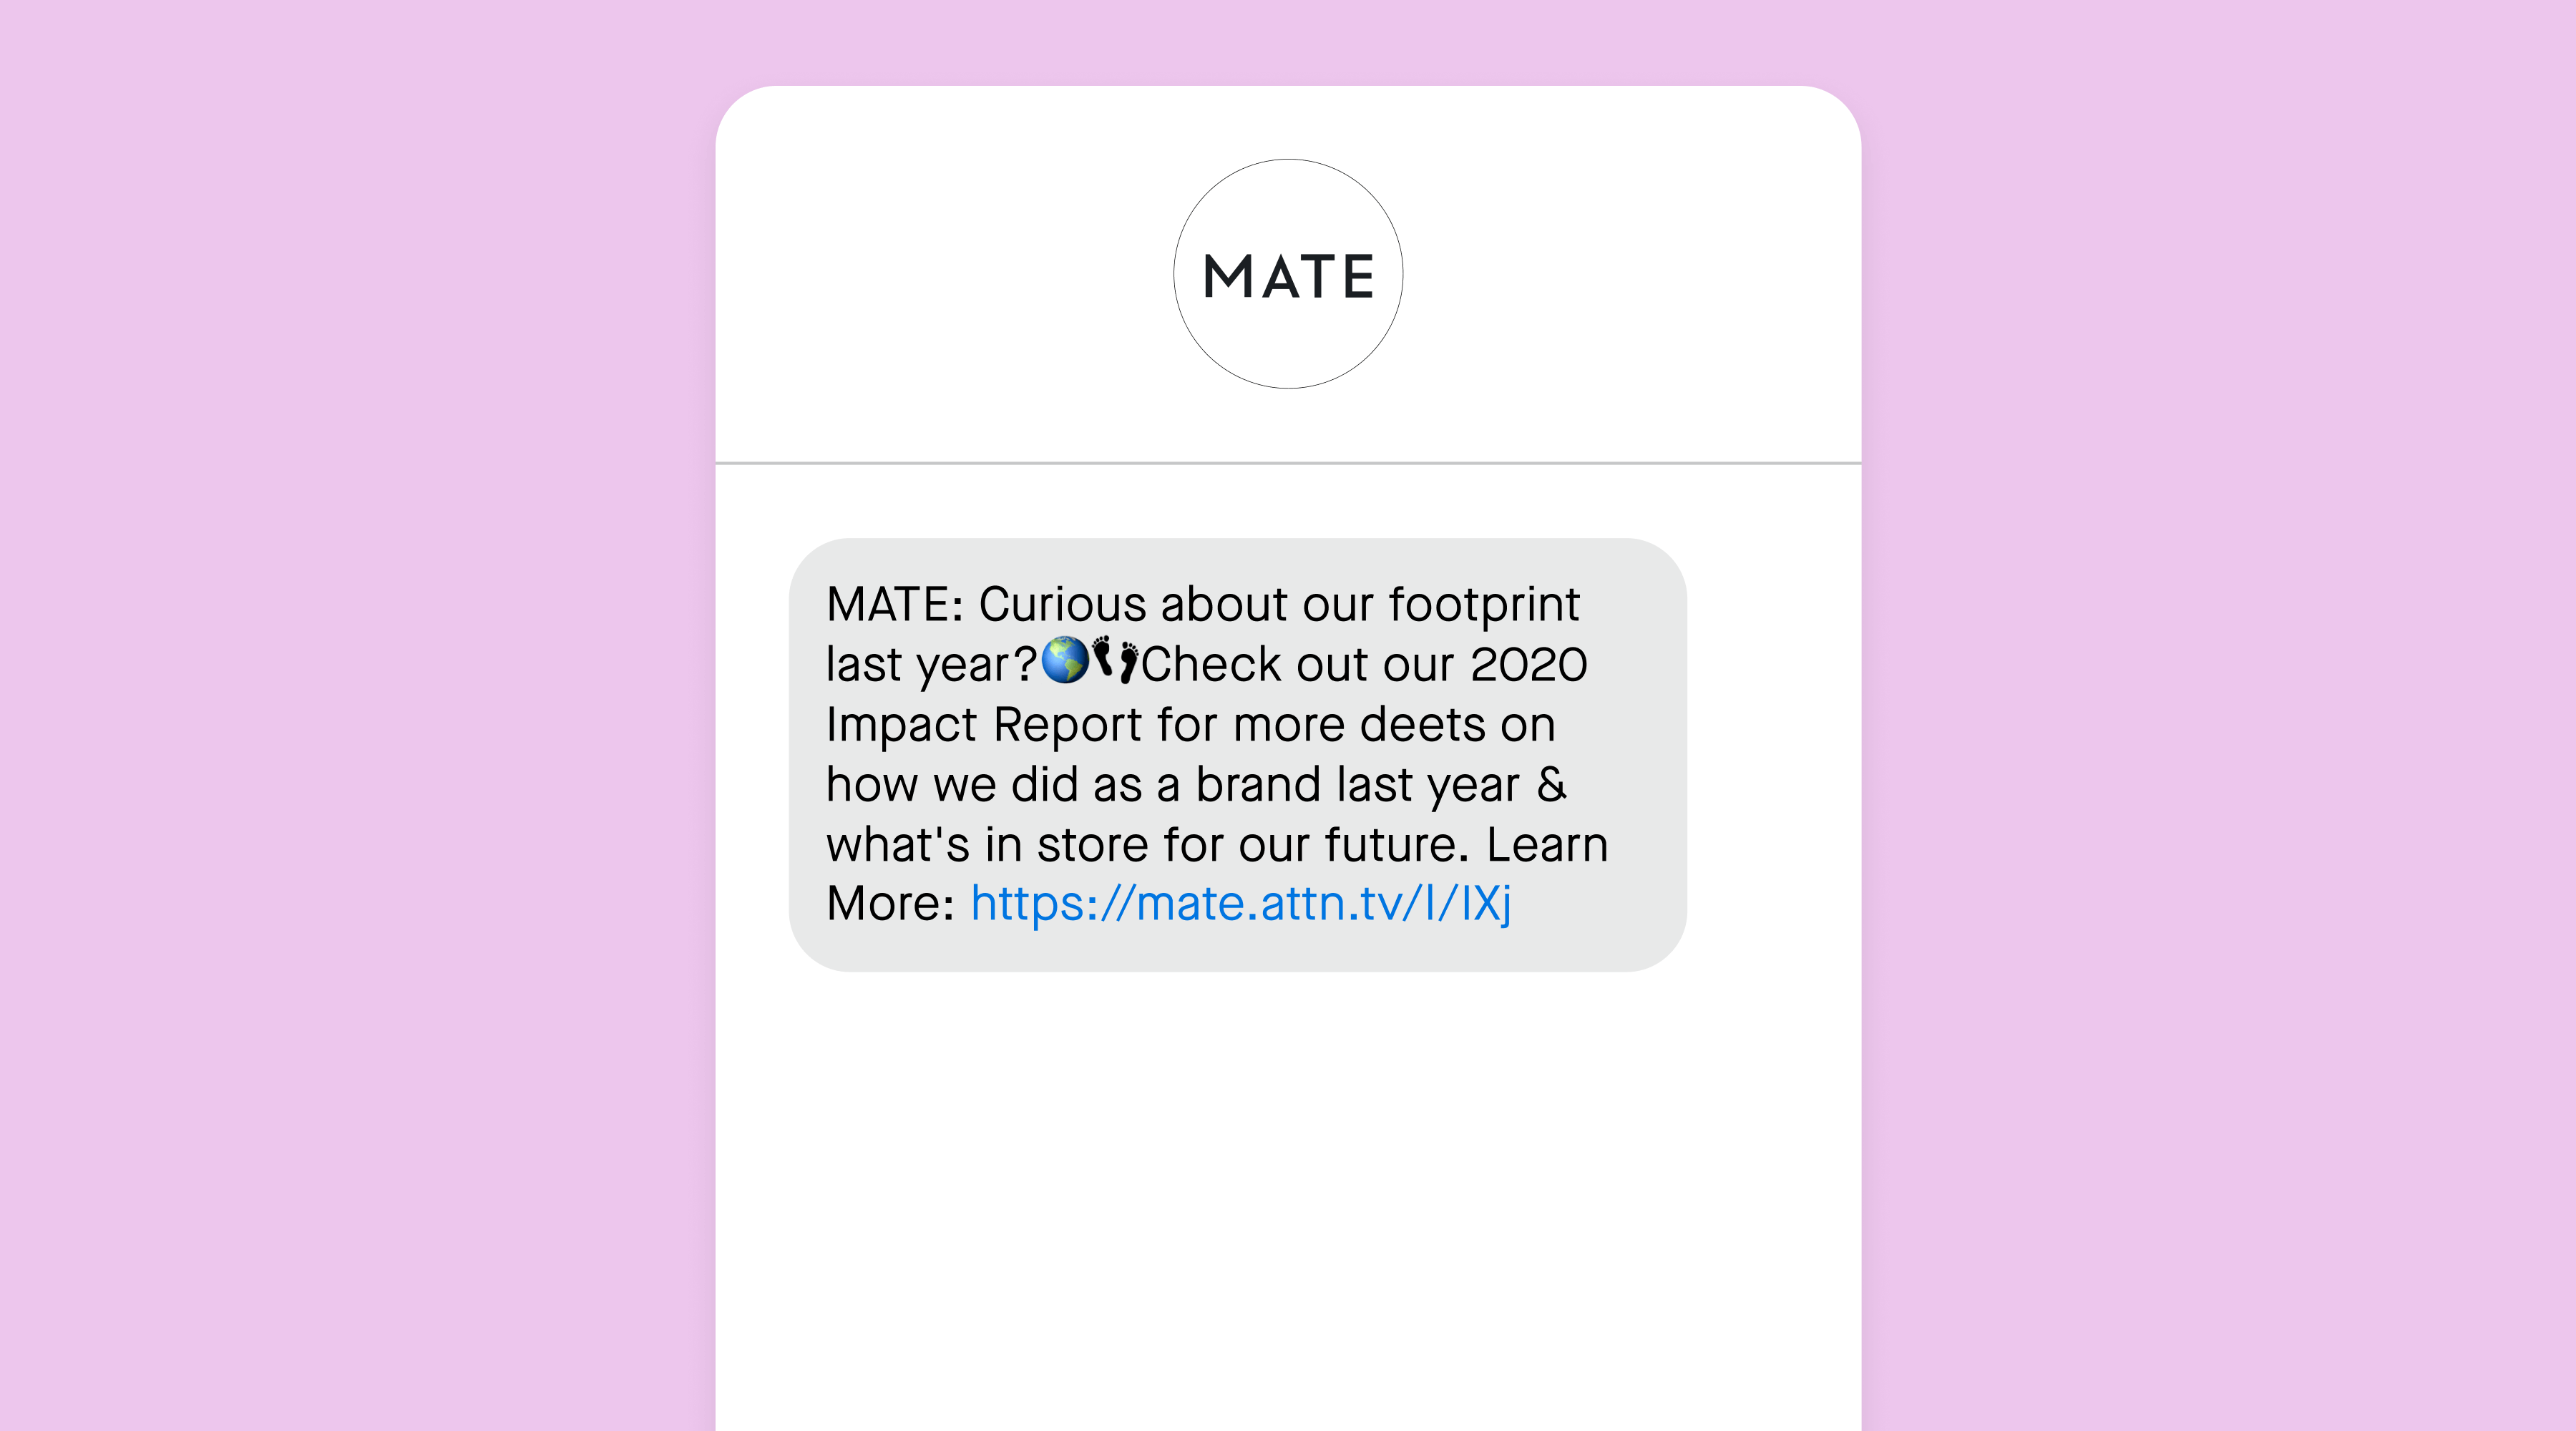 MATE example text